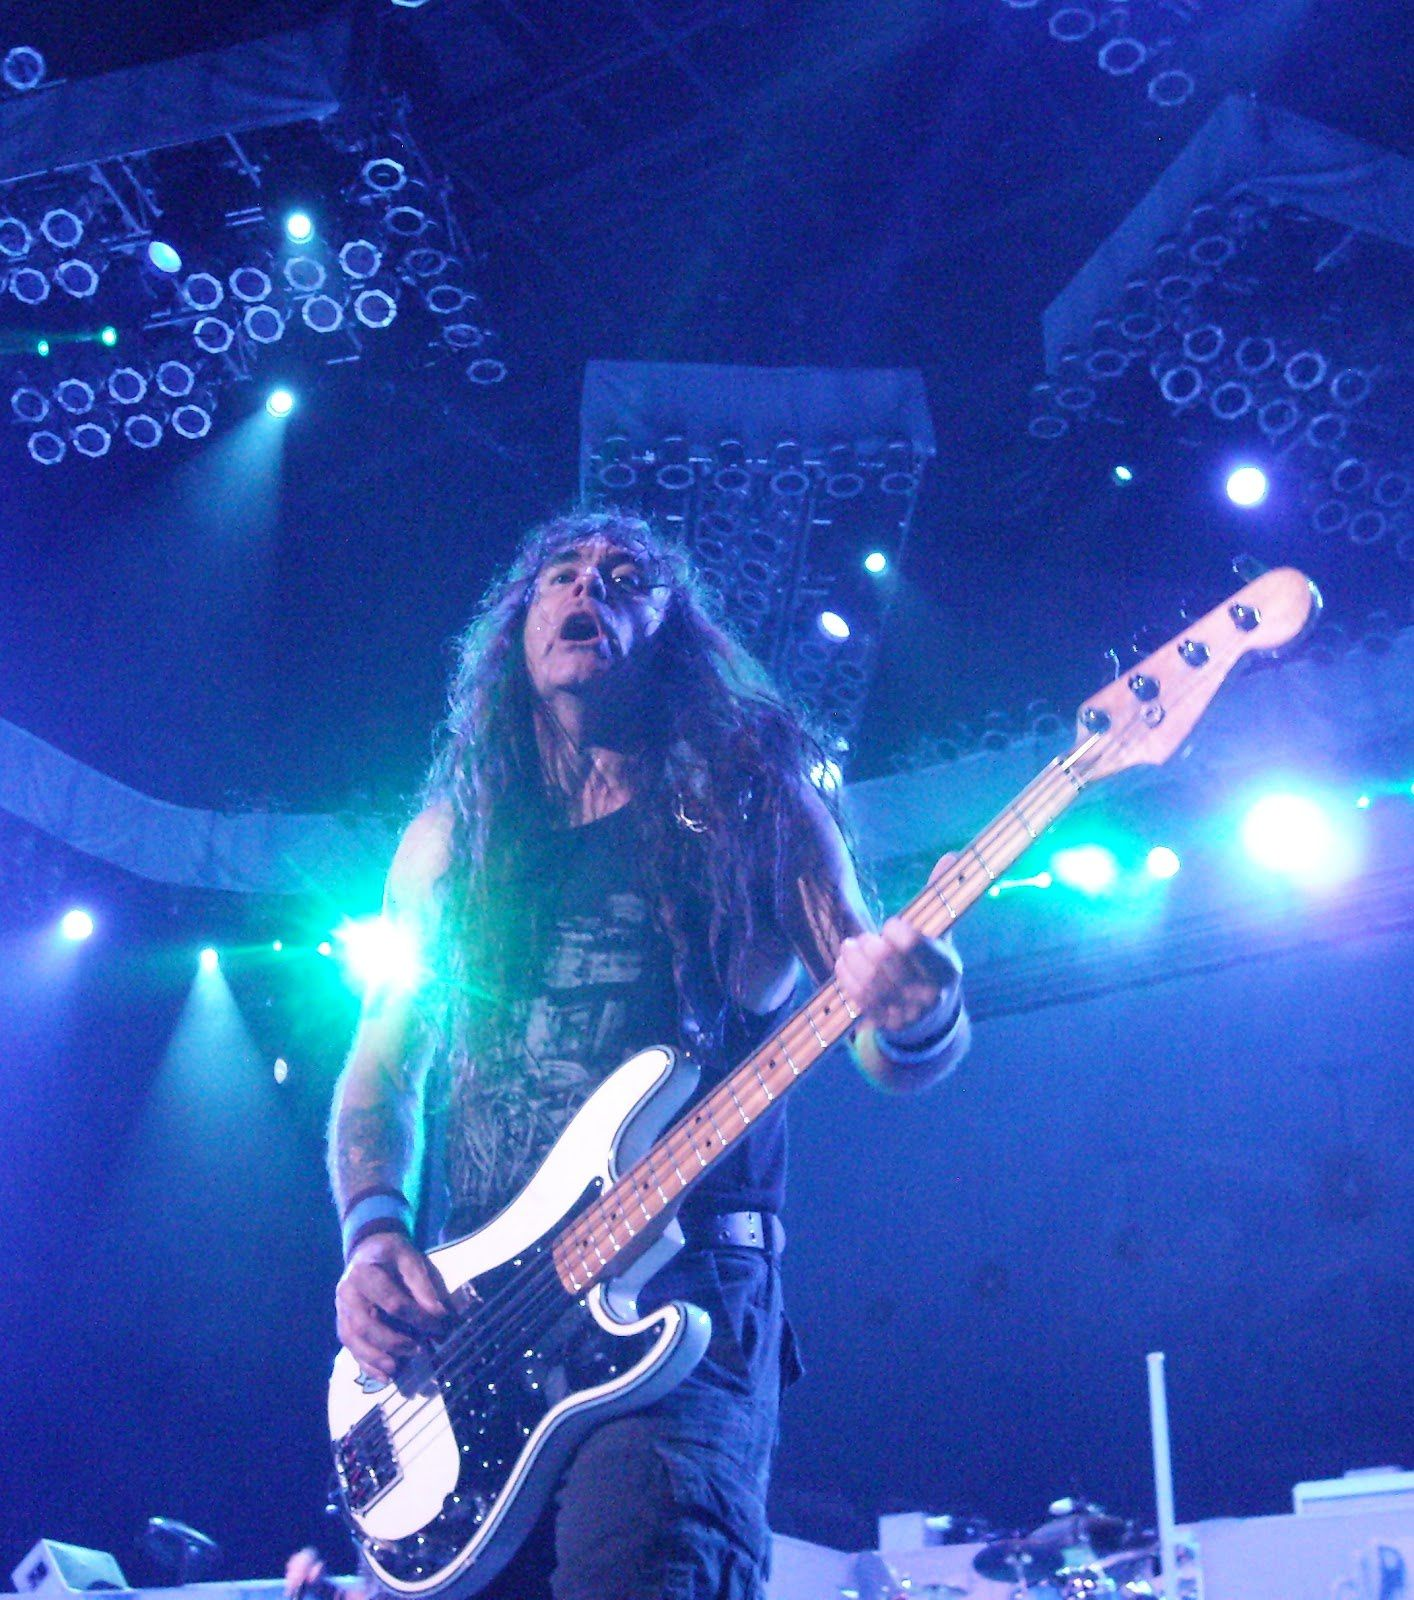 Steve Harris (Iron Maiden), encouraging the audience to sing along during Wasted Years near auburn washington (2012)